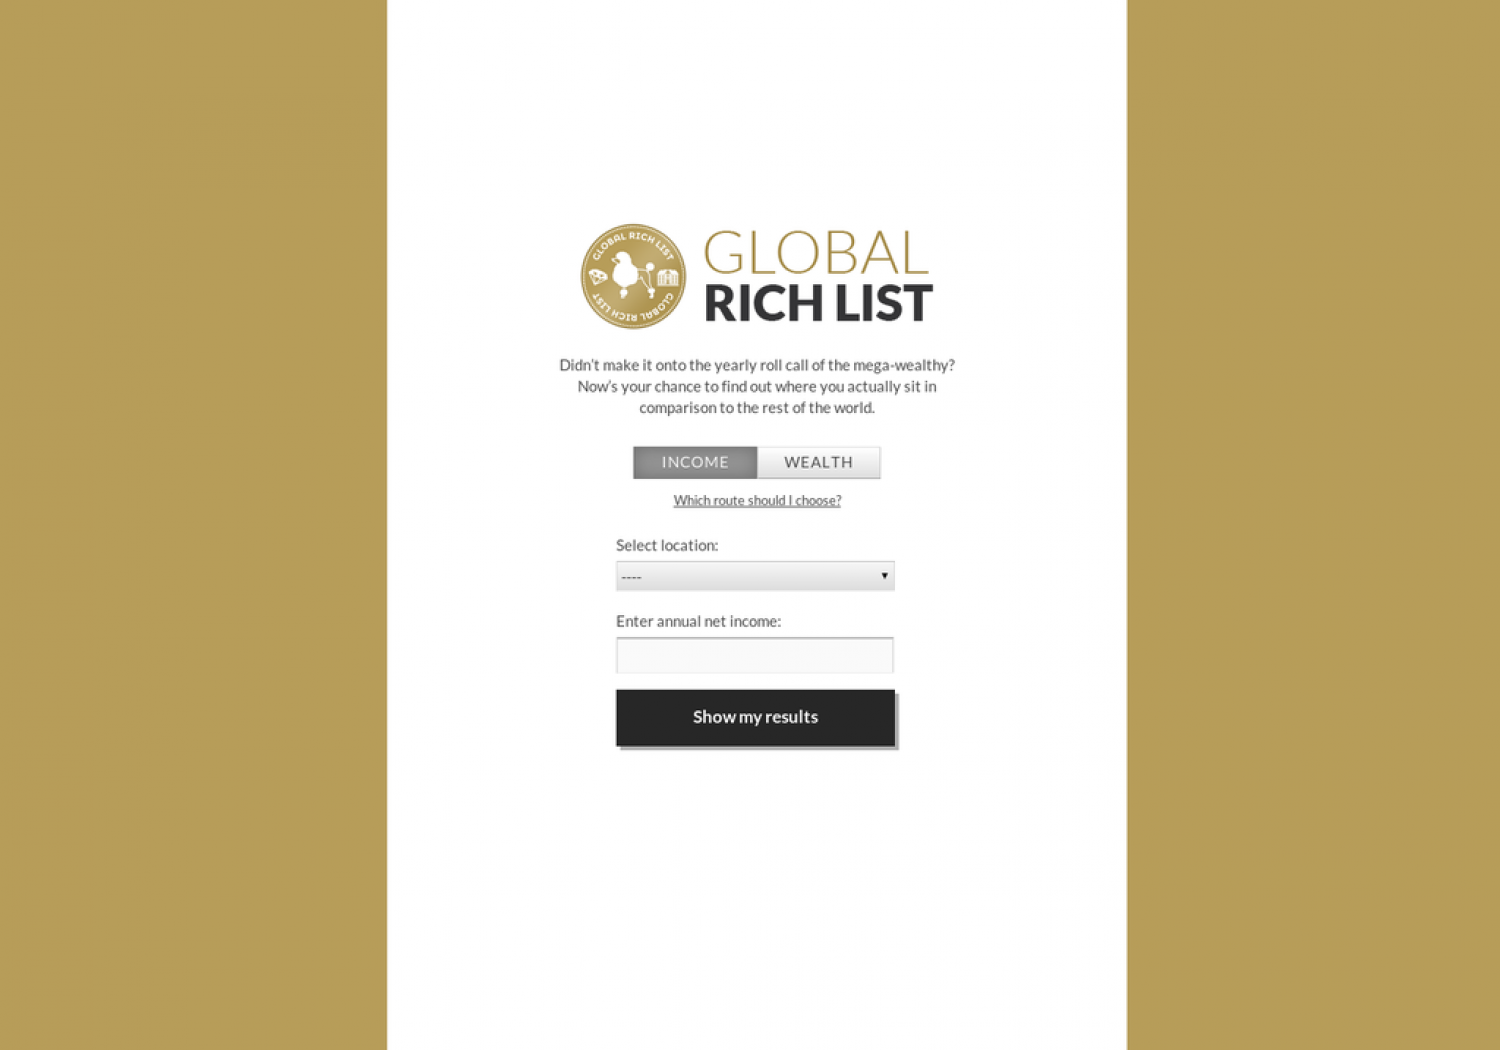 Global Rich List Infographic